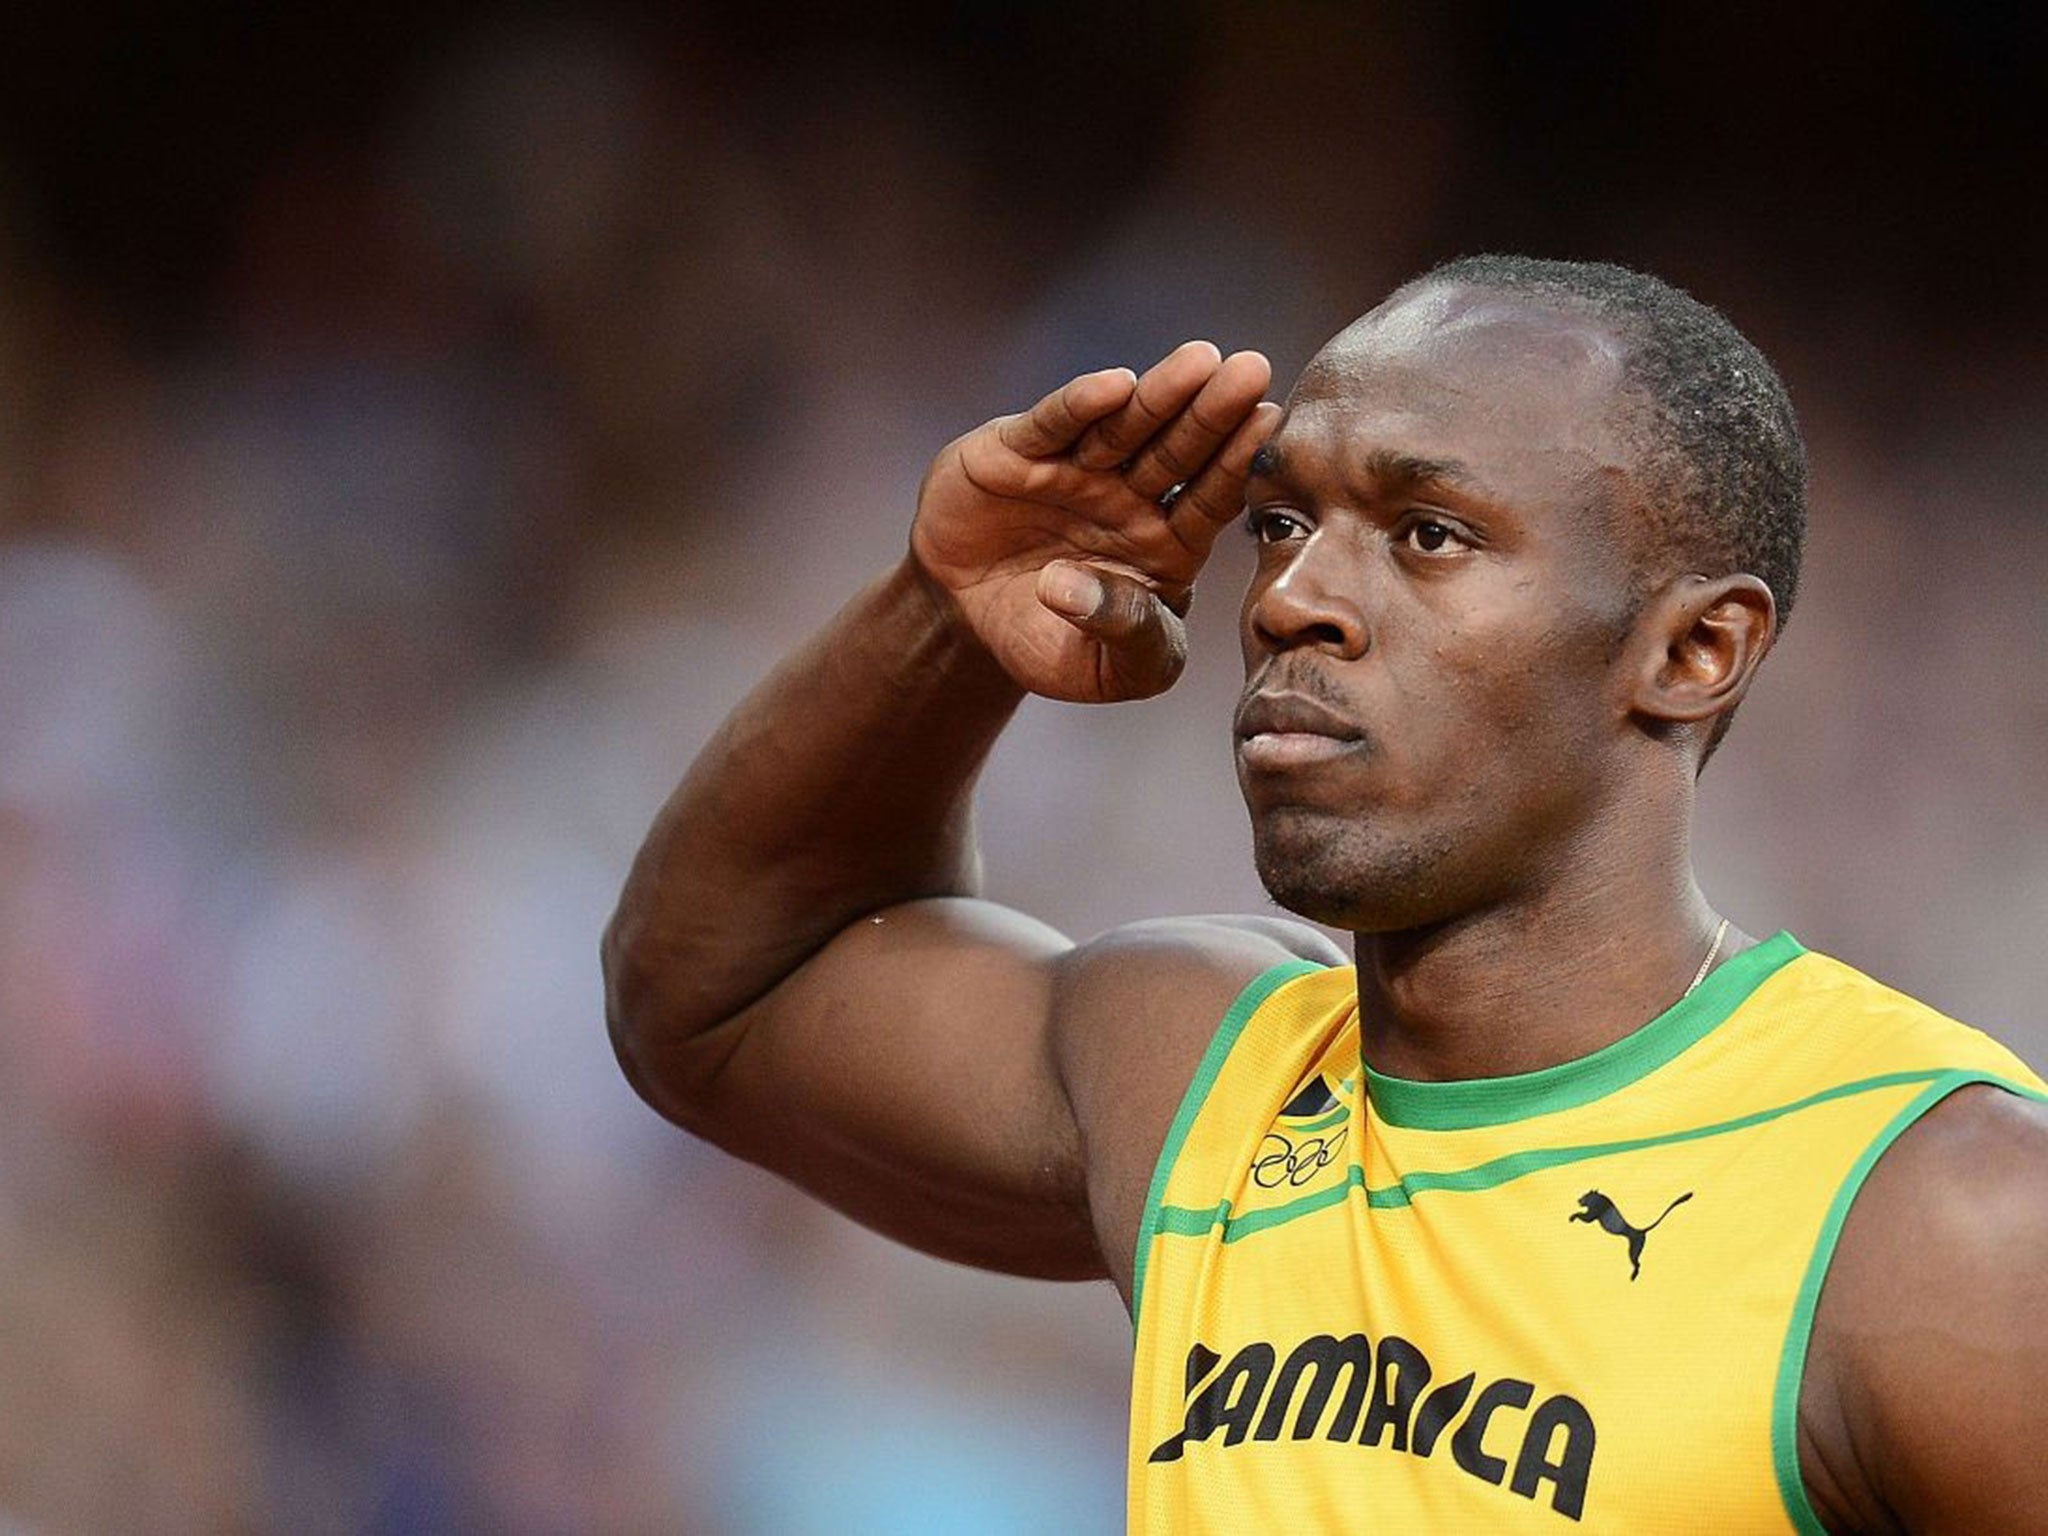 bolt sex personals Usain bolt (pictured) is known as jamaica's premier world- and- olympic-winning sprinter a national hero, bolt has recently gained a boatload of criticism, though, due to his recent.